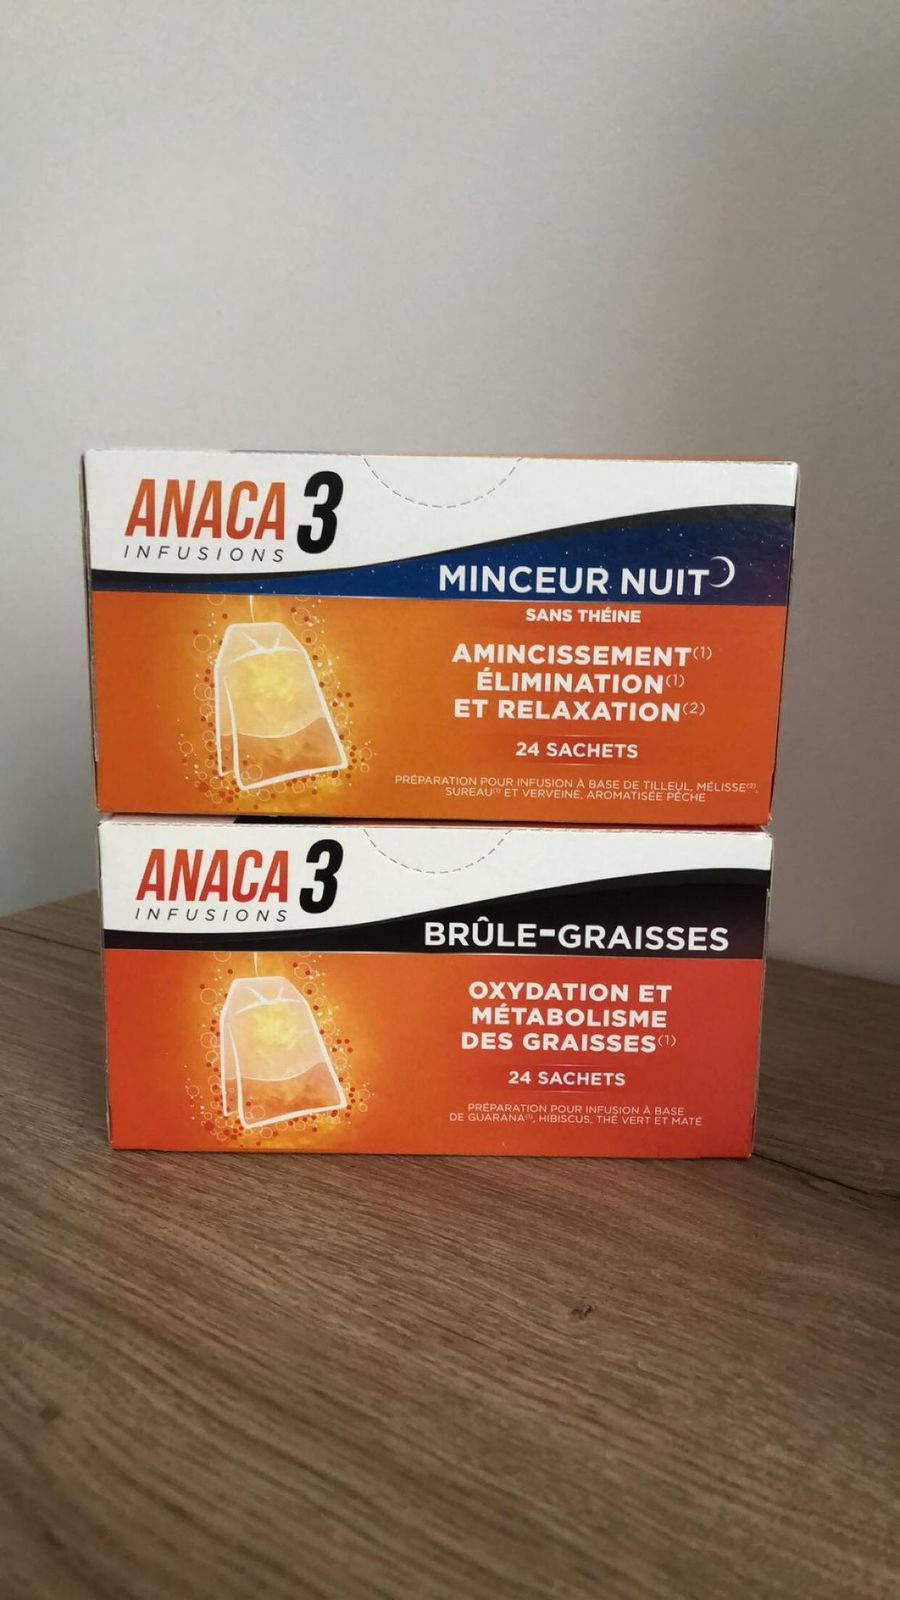 Je découvre Anaca 3 Infusions